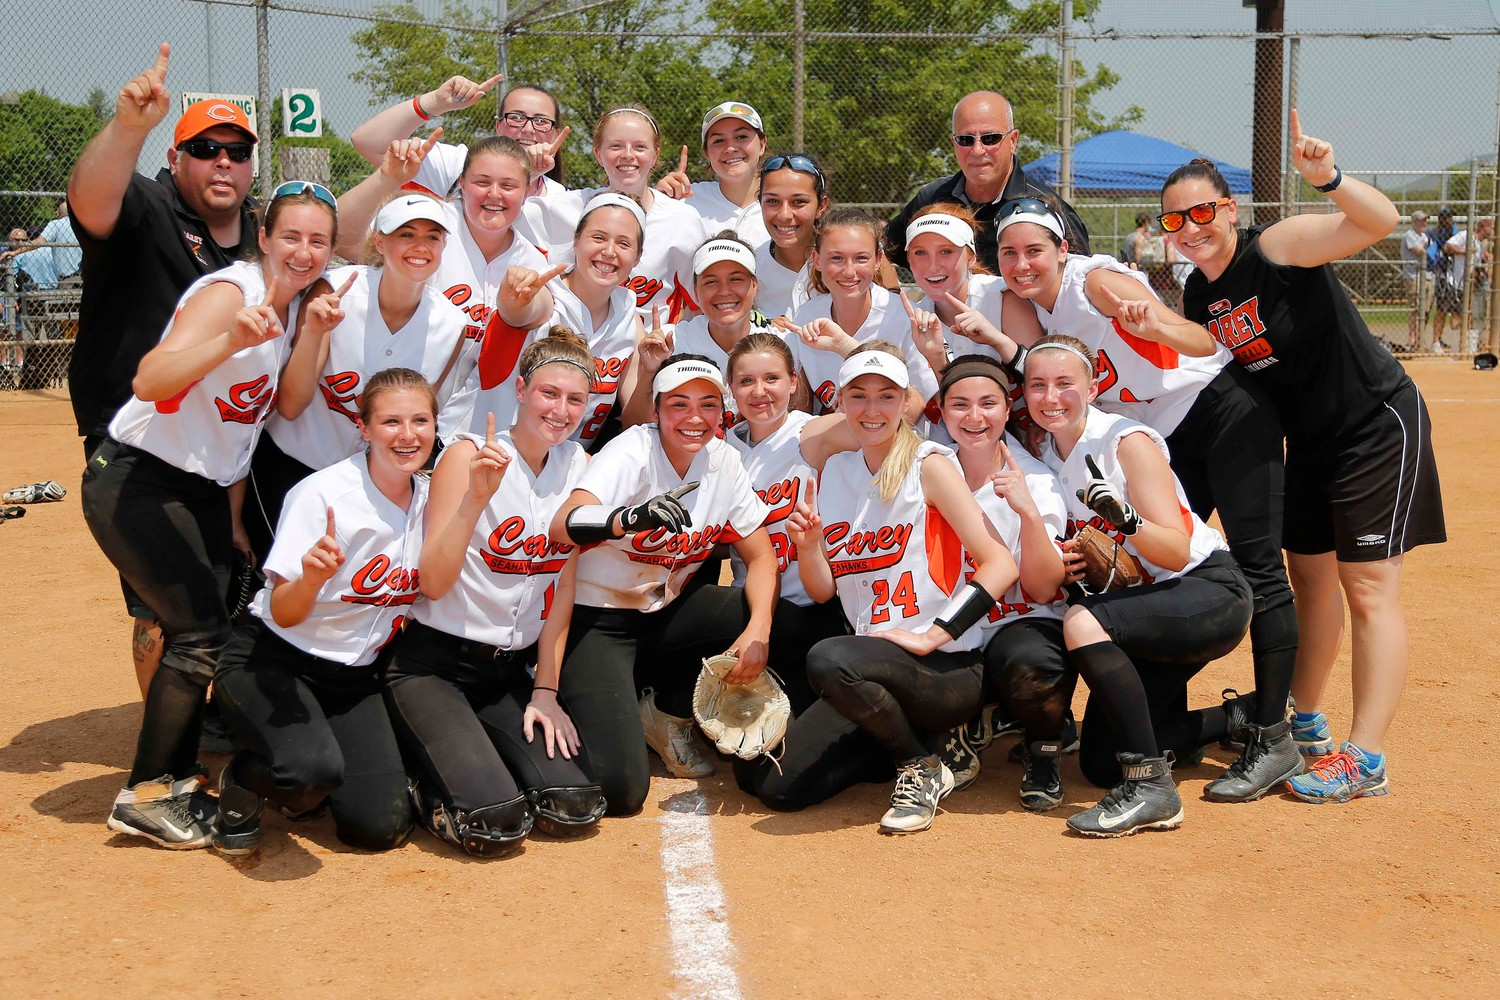 Carey captured the Nassau Class A softball title on Saturday with a 6-2 win over Mepham.